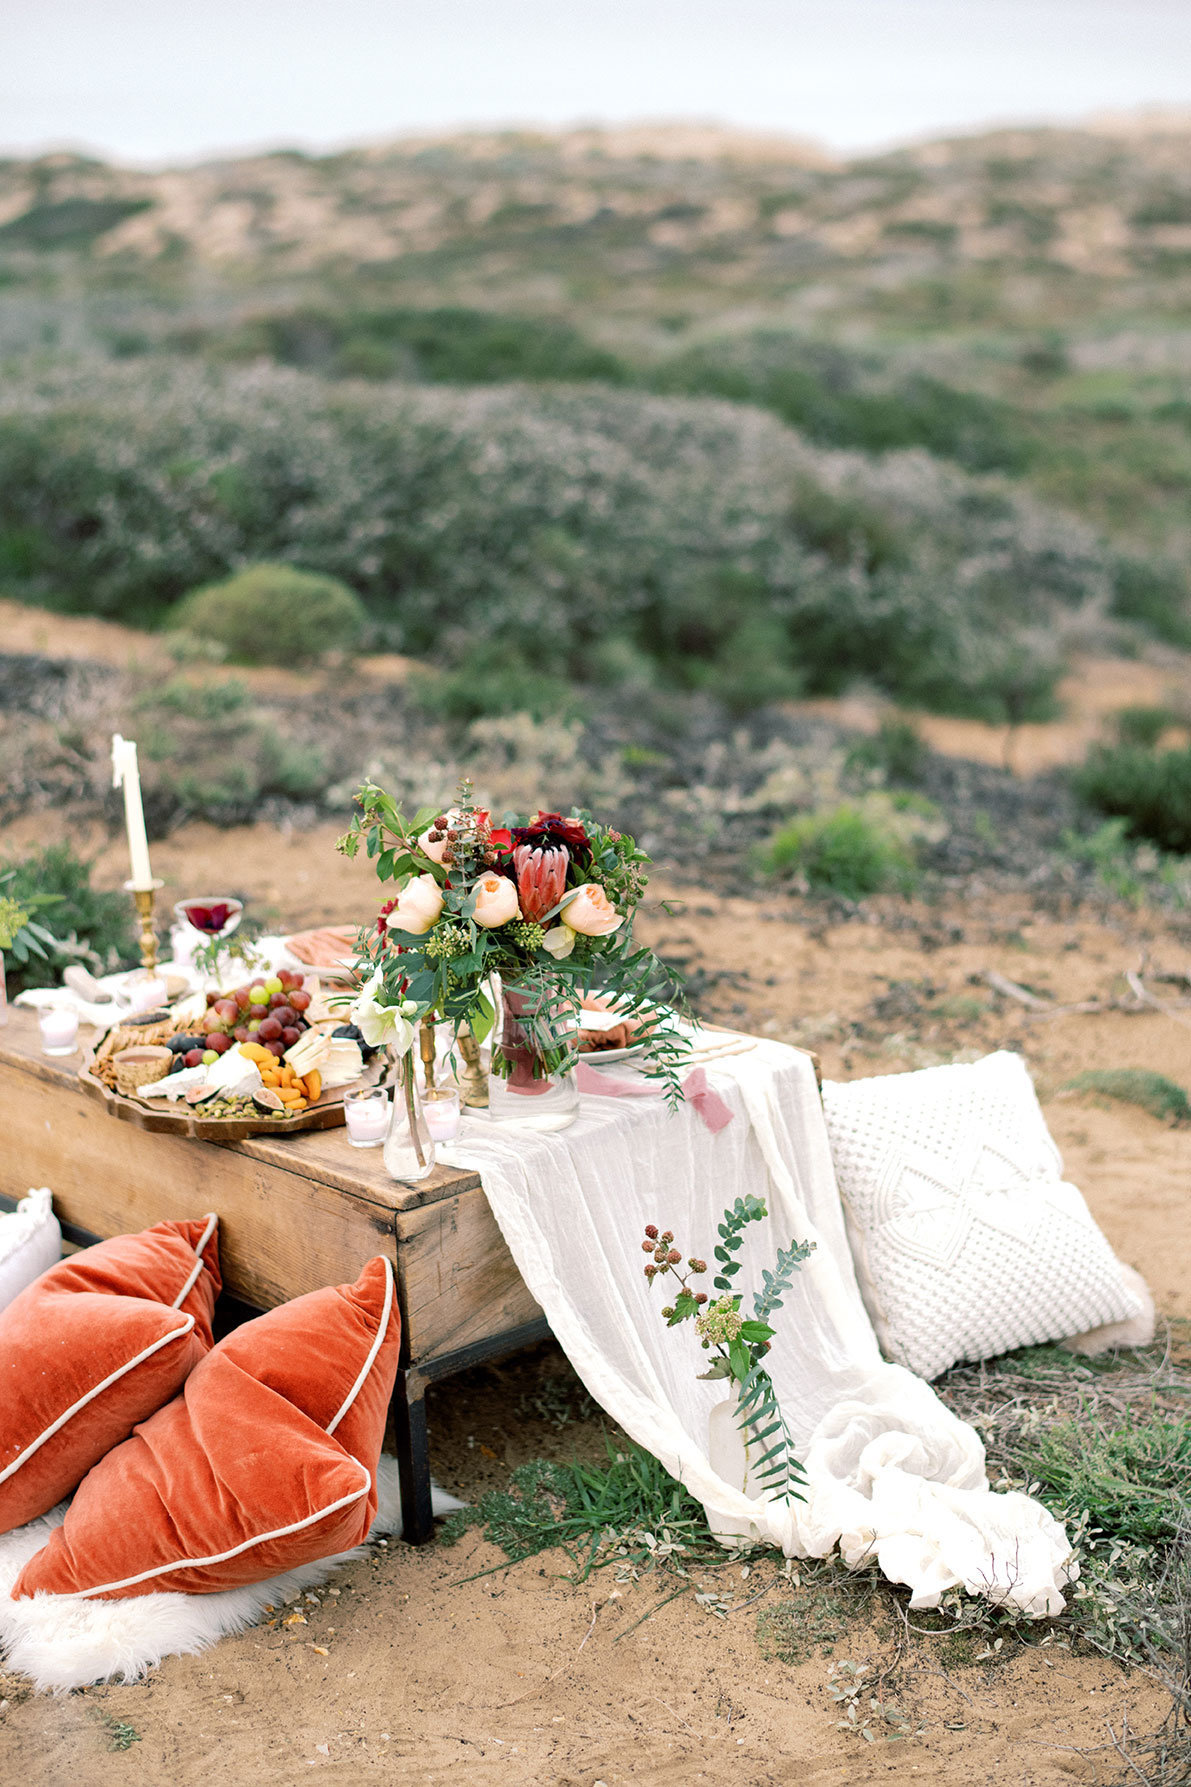 Montana-de-Oro-Elopement-styled-by-San-Luis-Obispo-Wedding-Planner-Embark-Event-Design-17